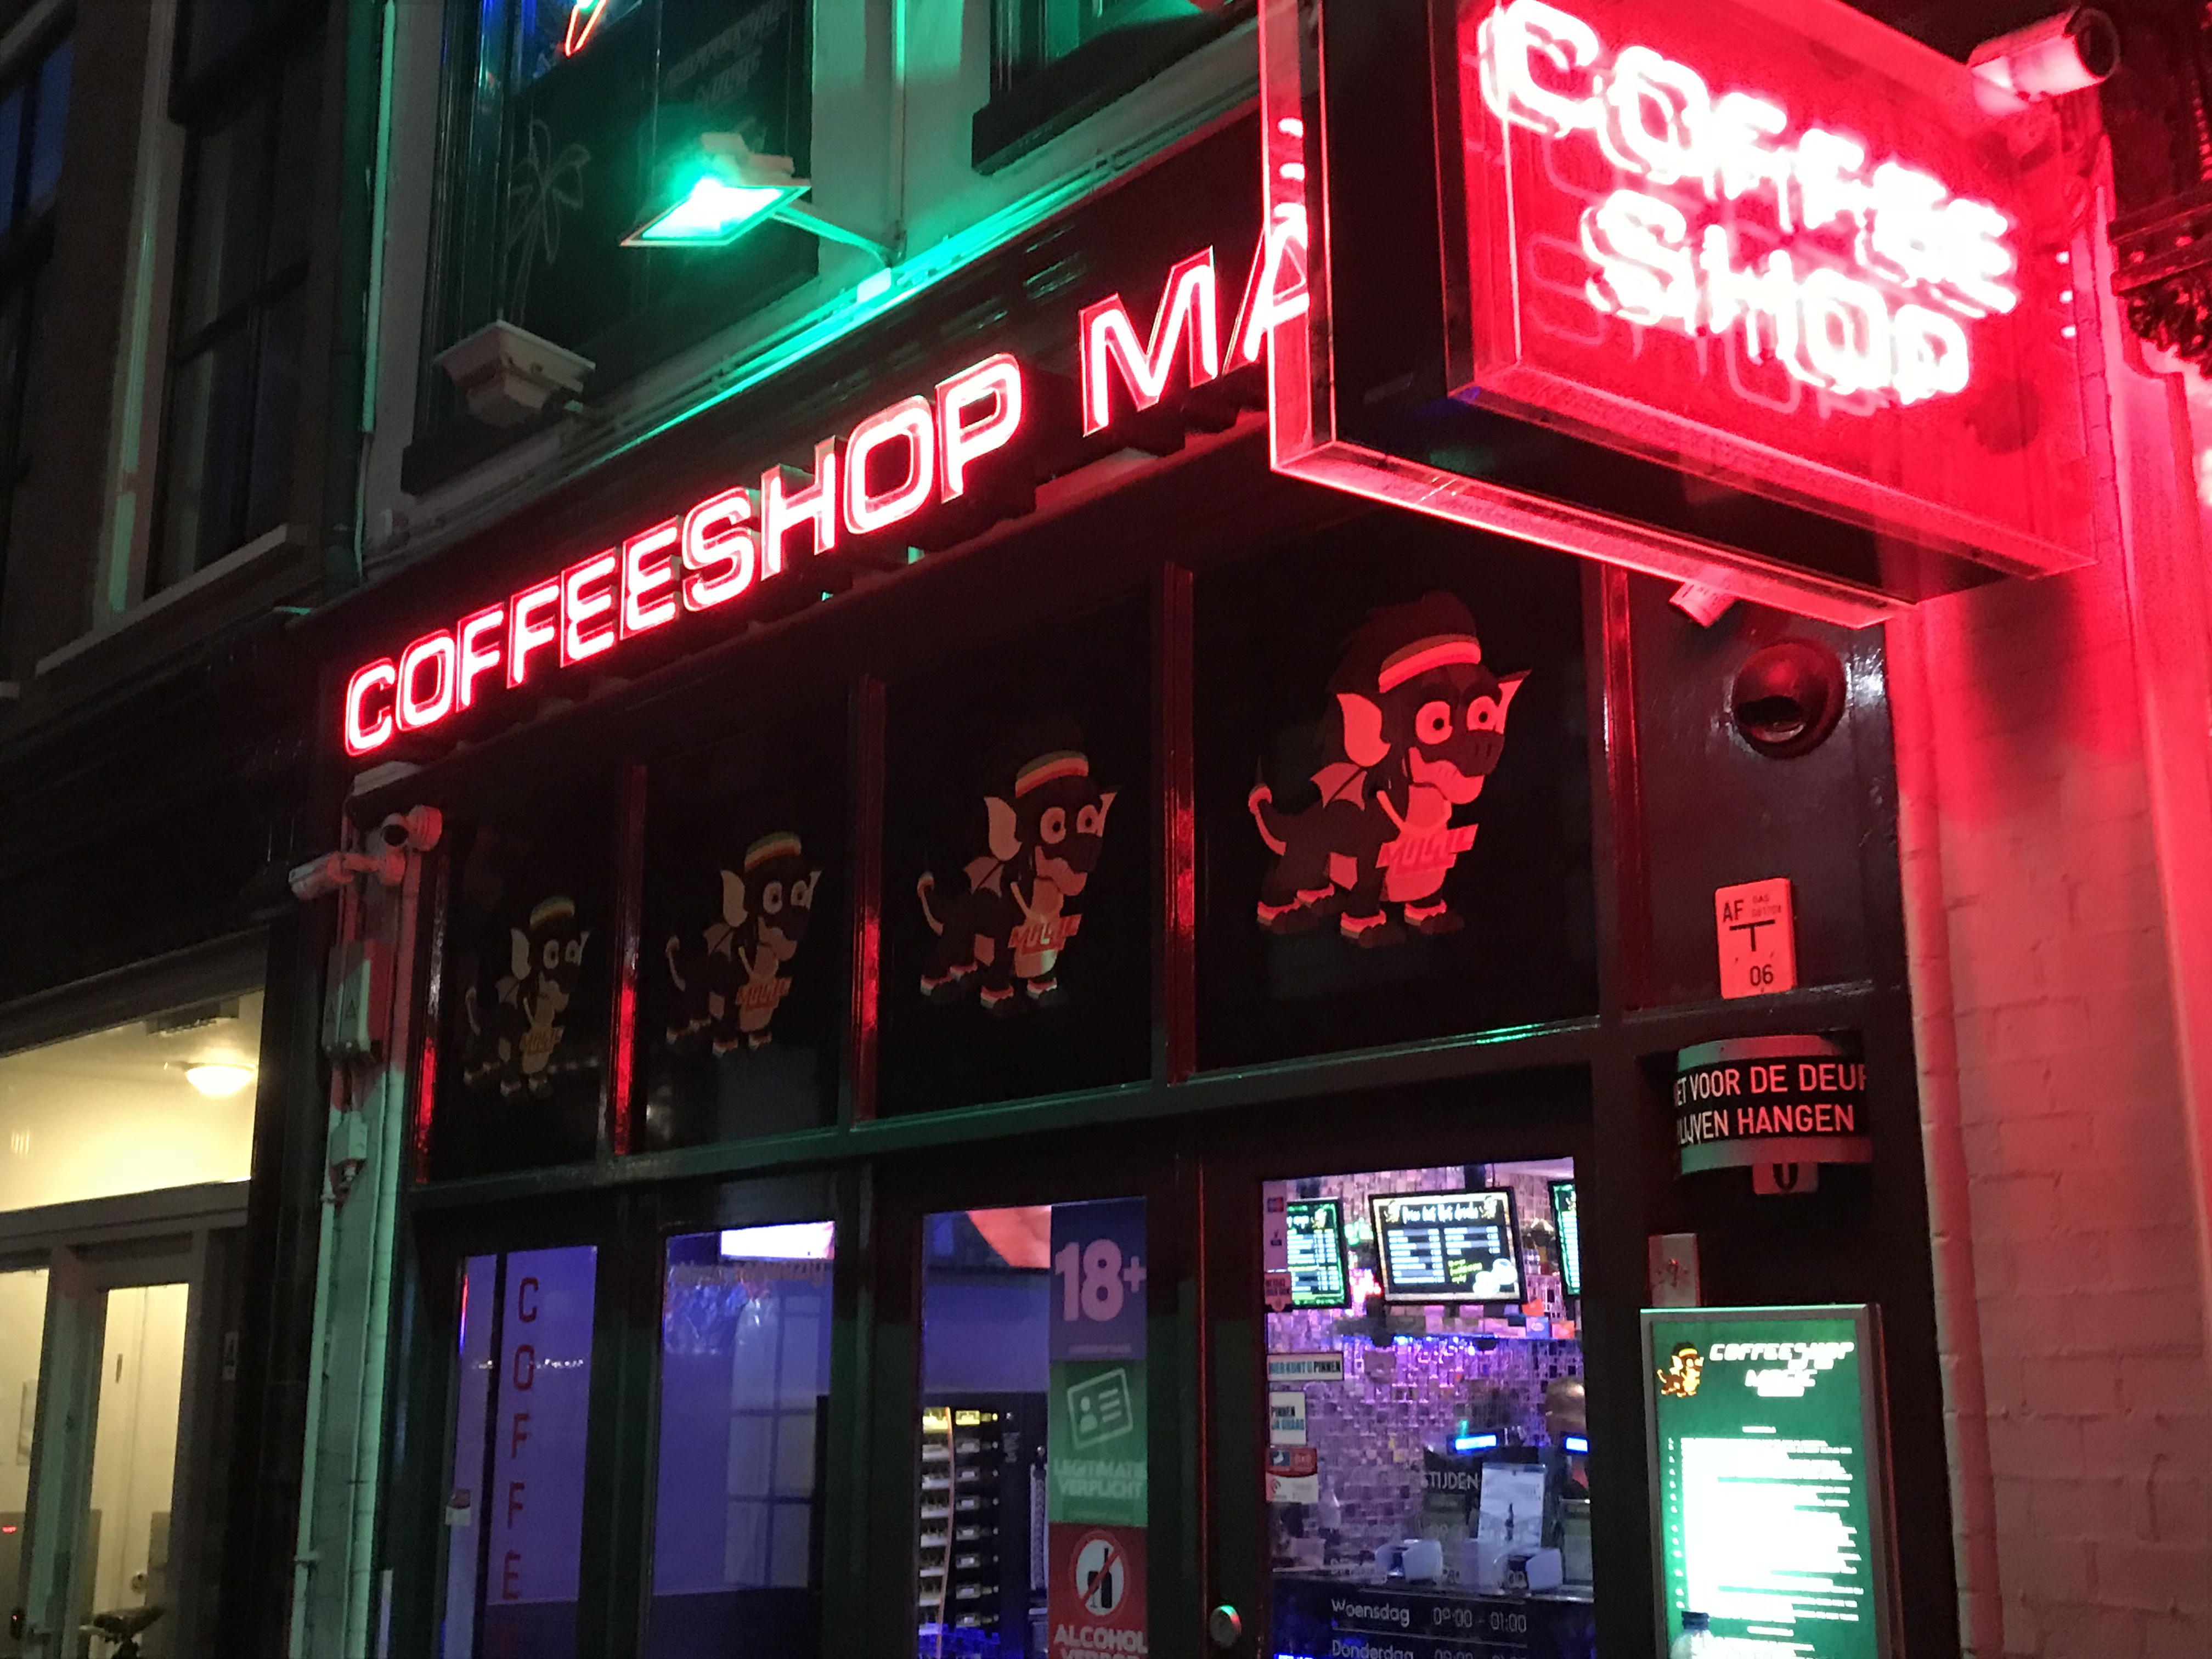 Magic Coffeeshop